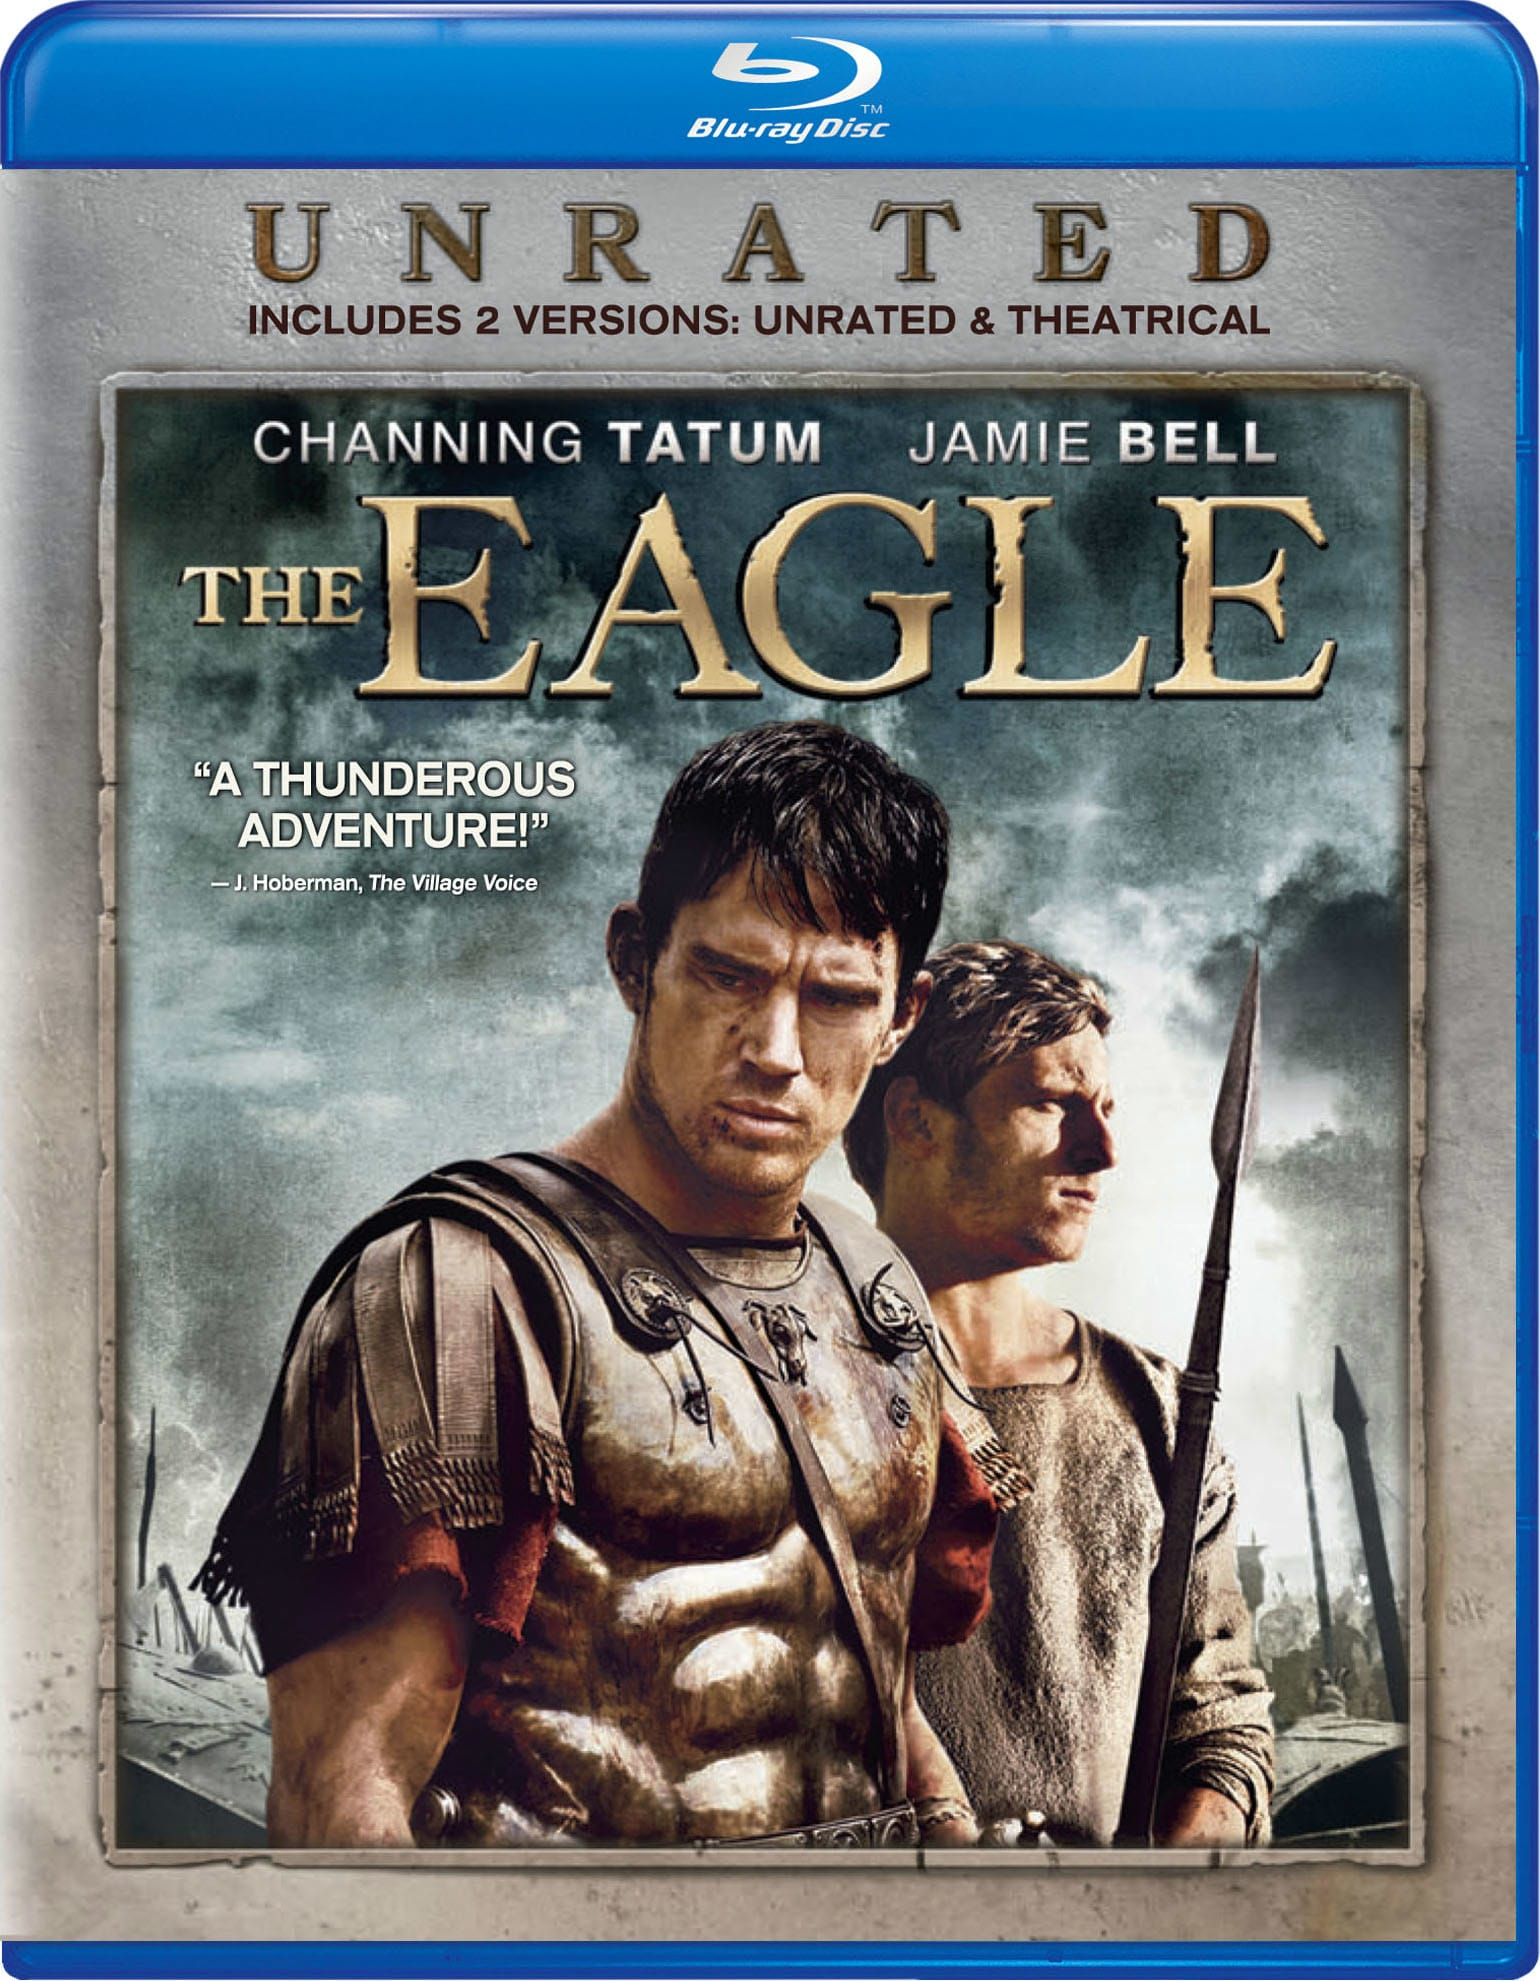 The Eagle [Blu-ray]